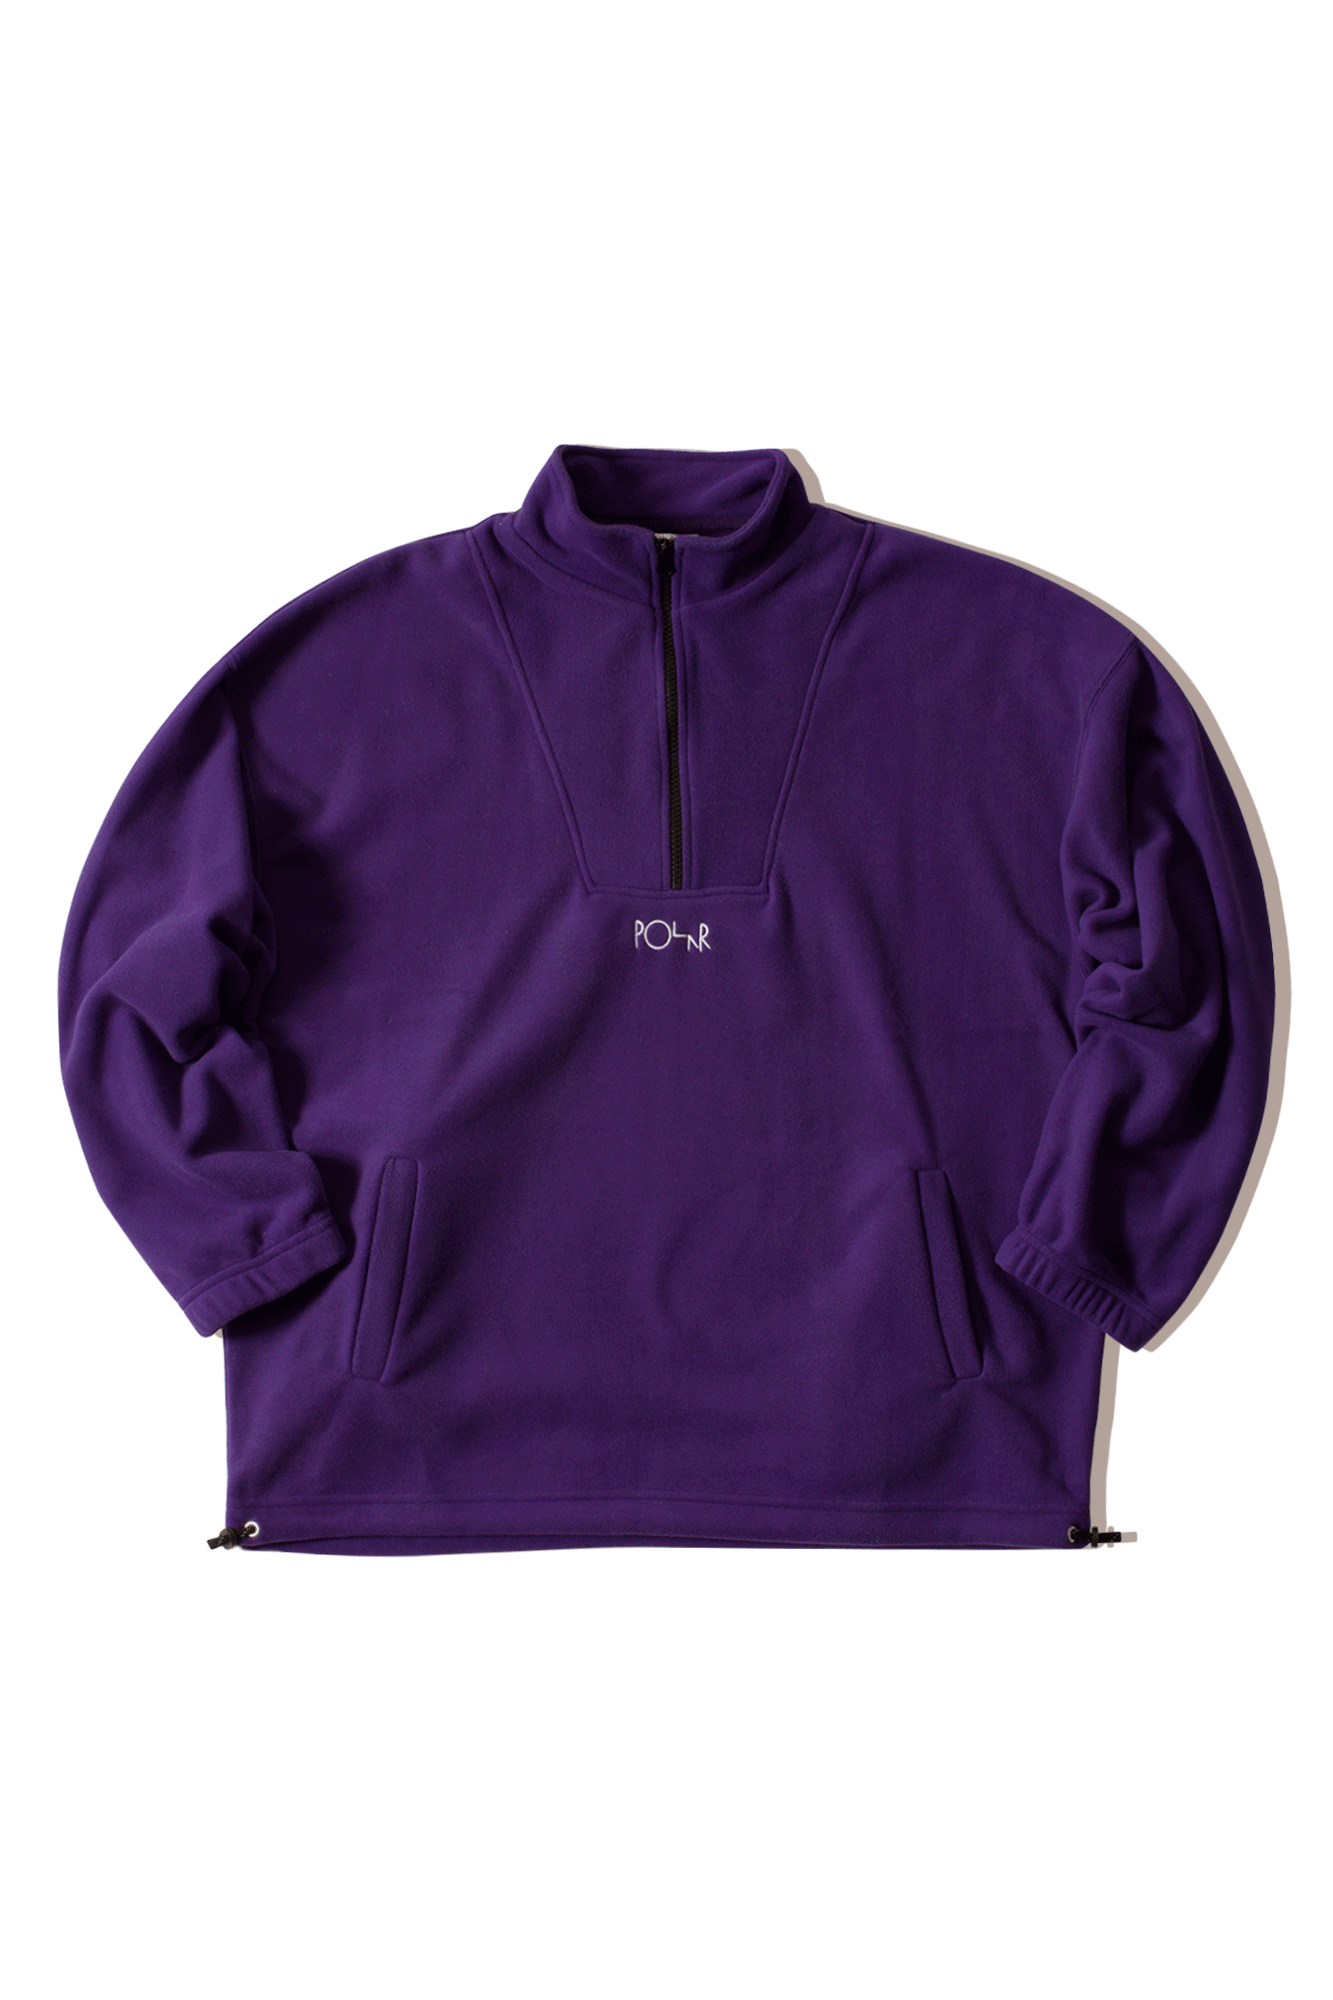 Sweaters Polar Lightweight Fleece Pullover Purple - One Block Down